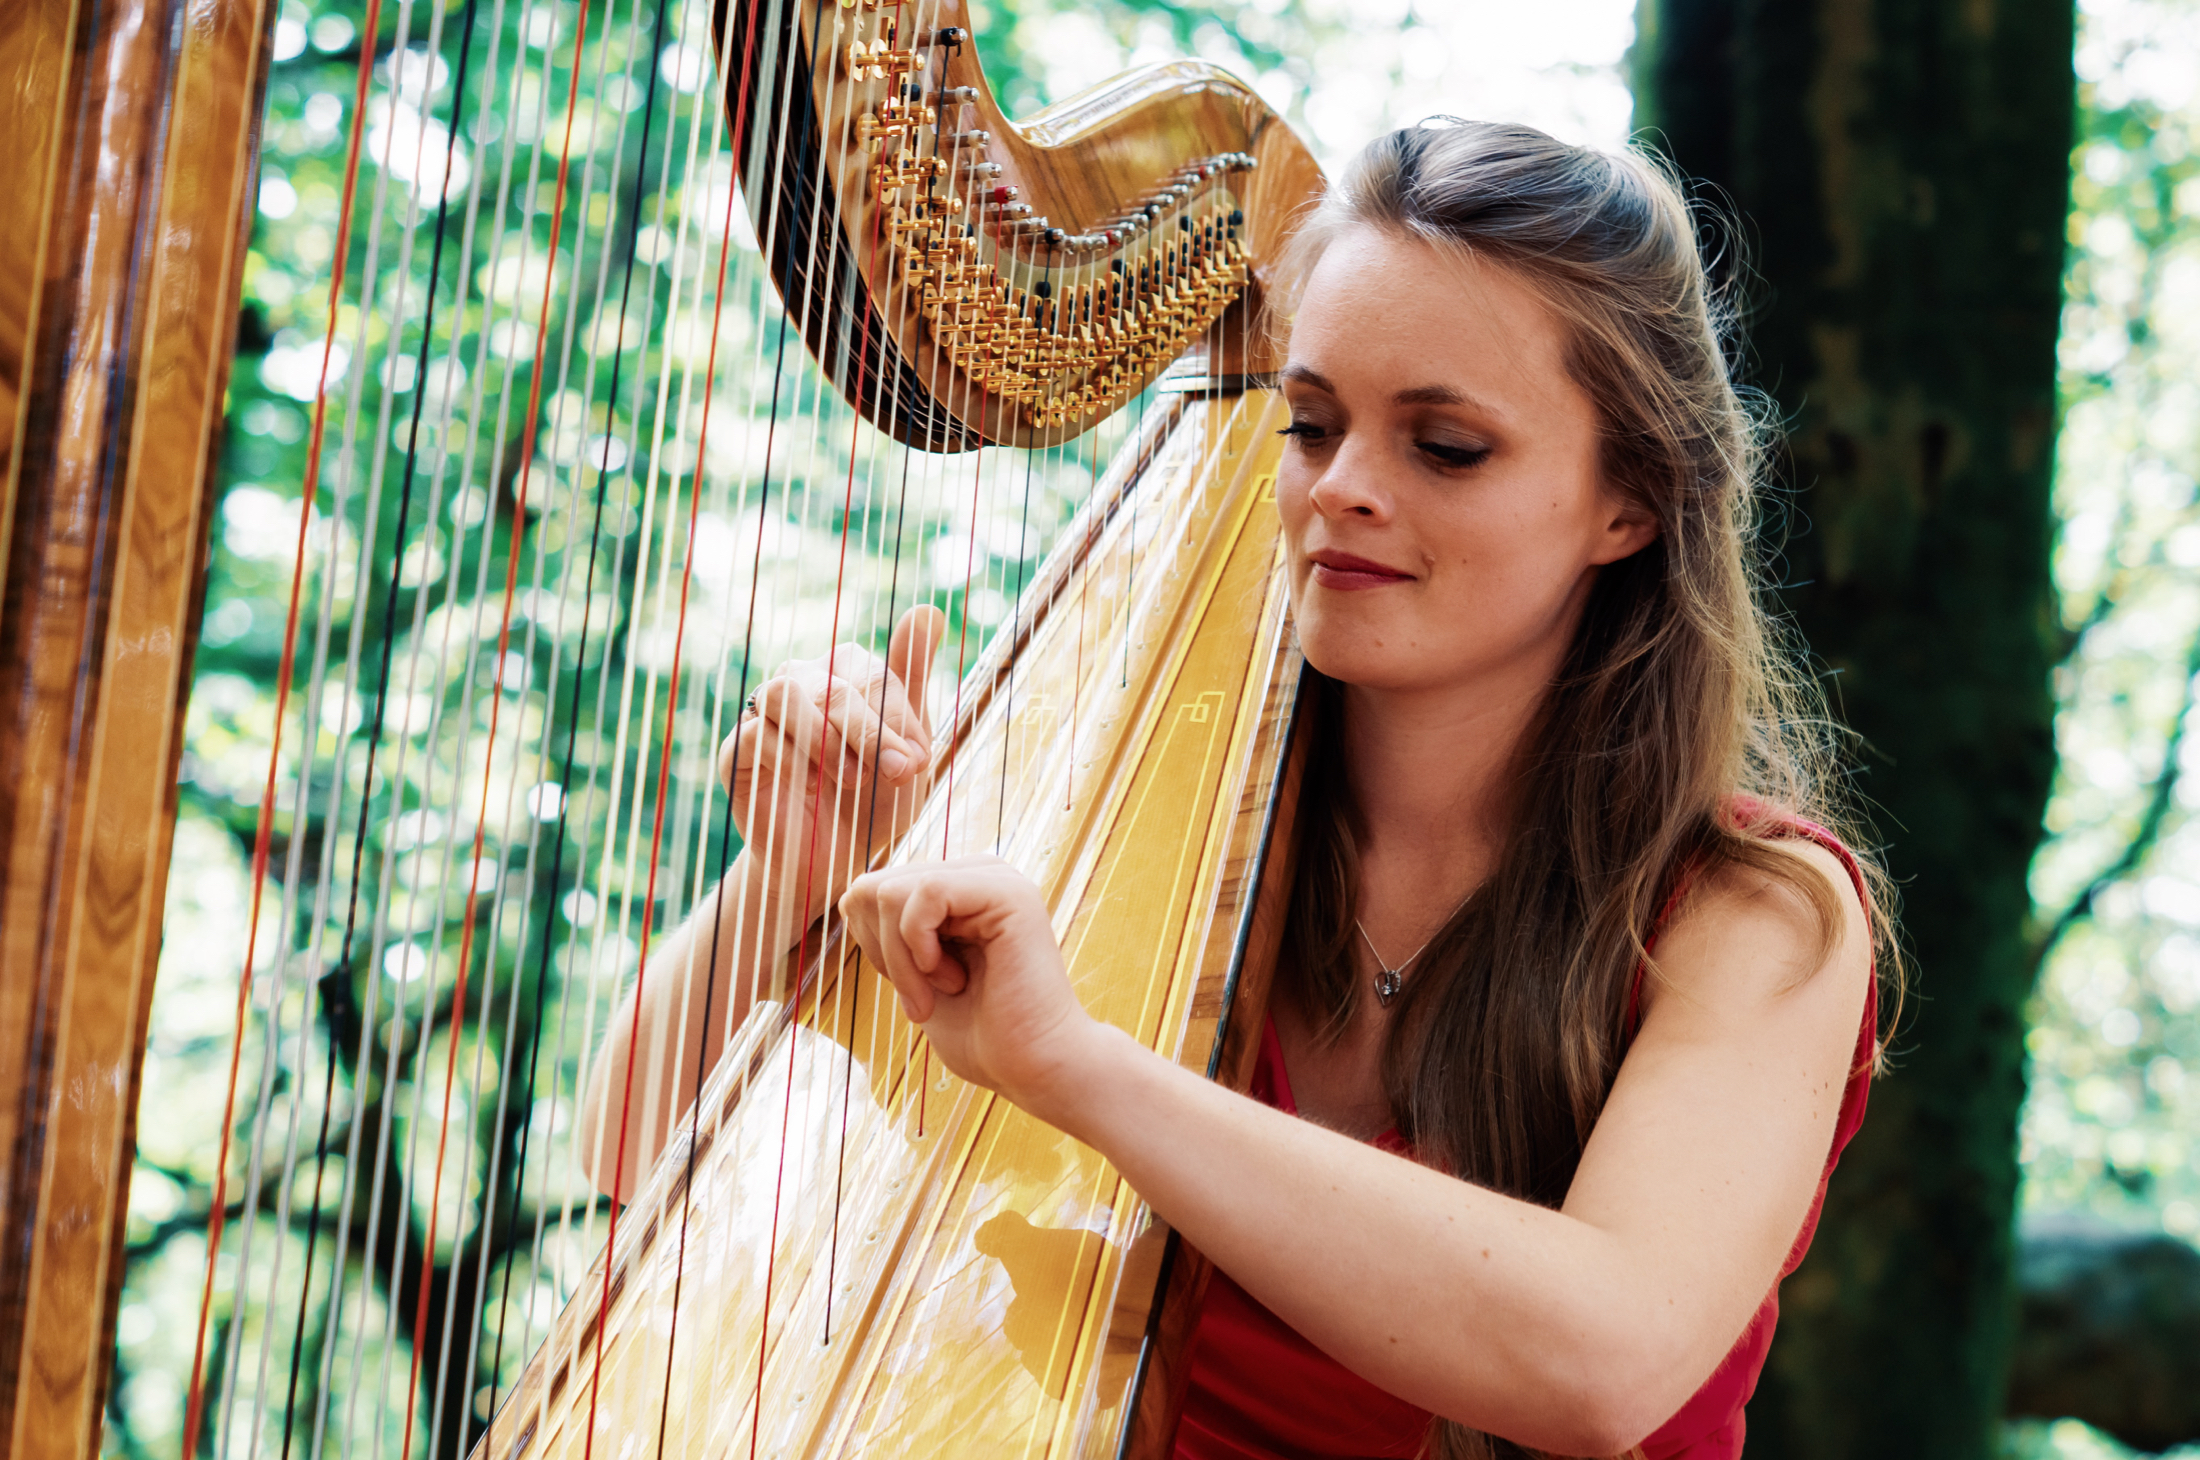 Natural photography by Jack Watkins in woodland for award-winning classical musician and harpist, Lucy Nolan